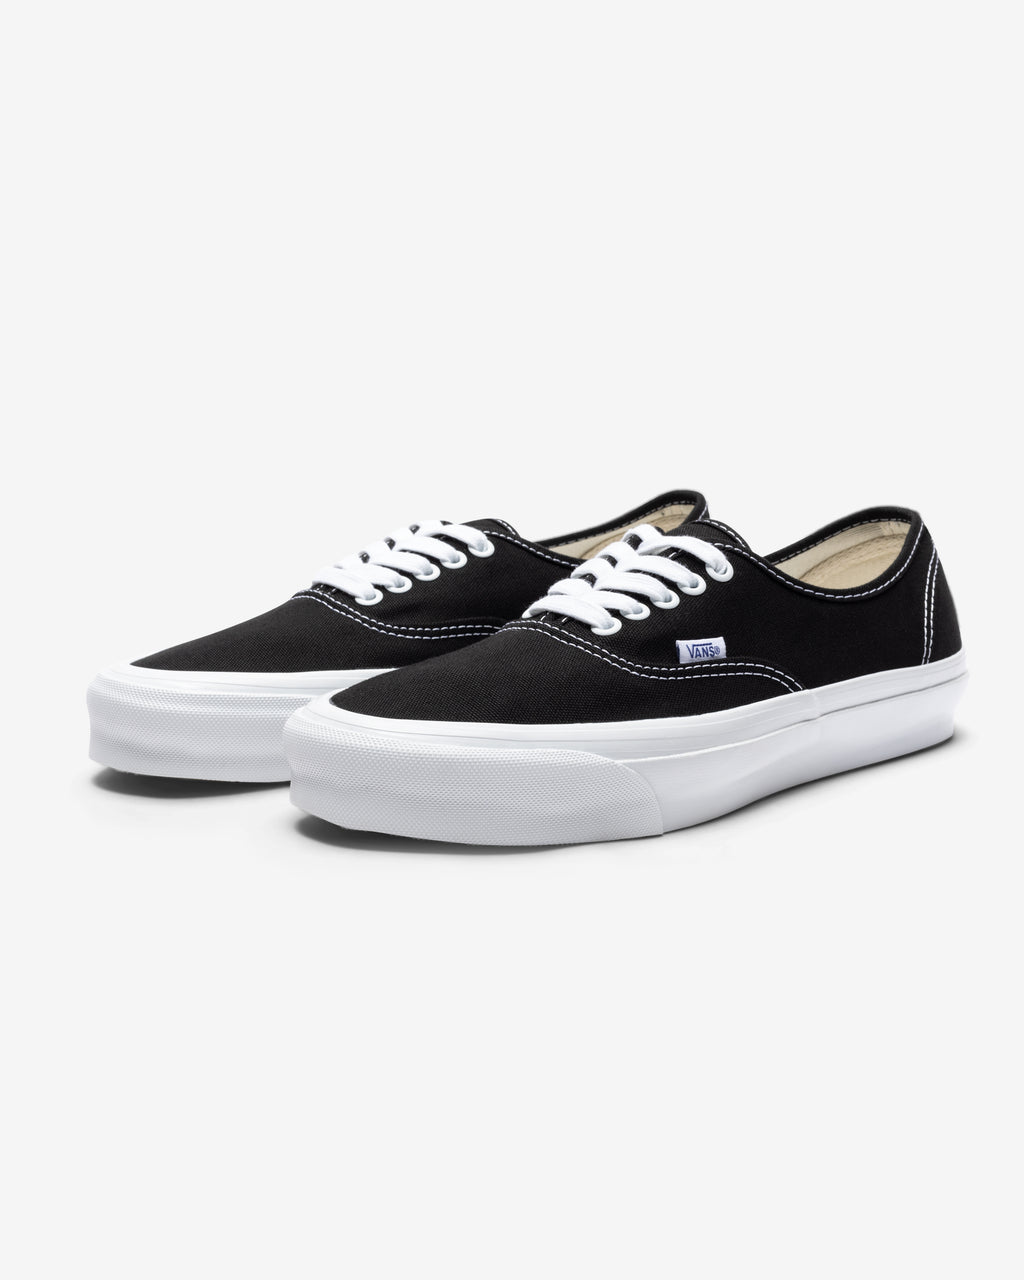 OG AUTHENTIC LX (CANVAS) - BLACK/ TRUEWHITE